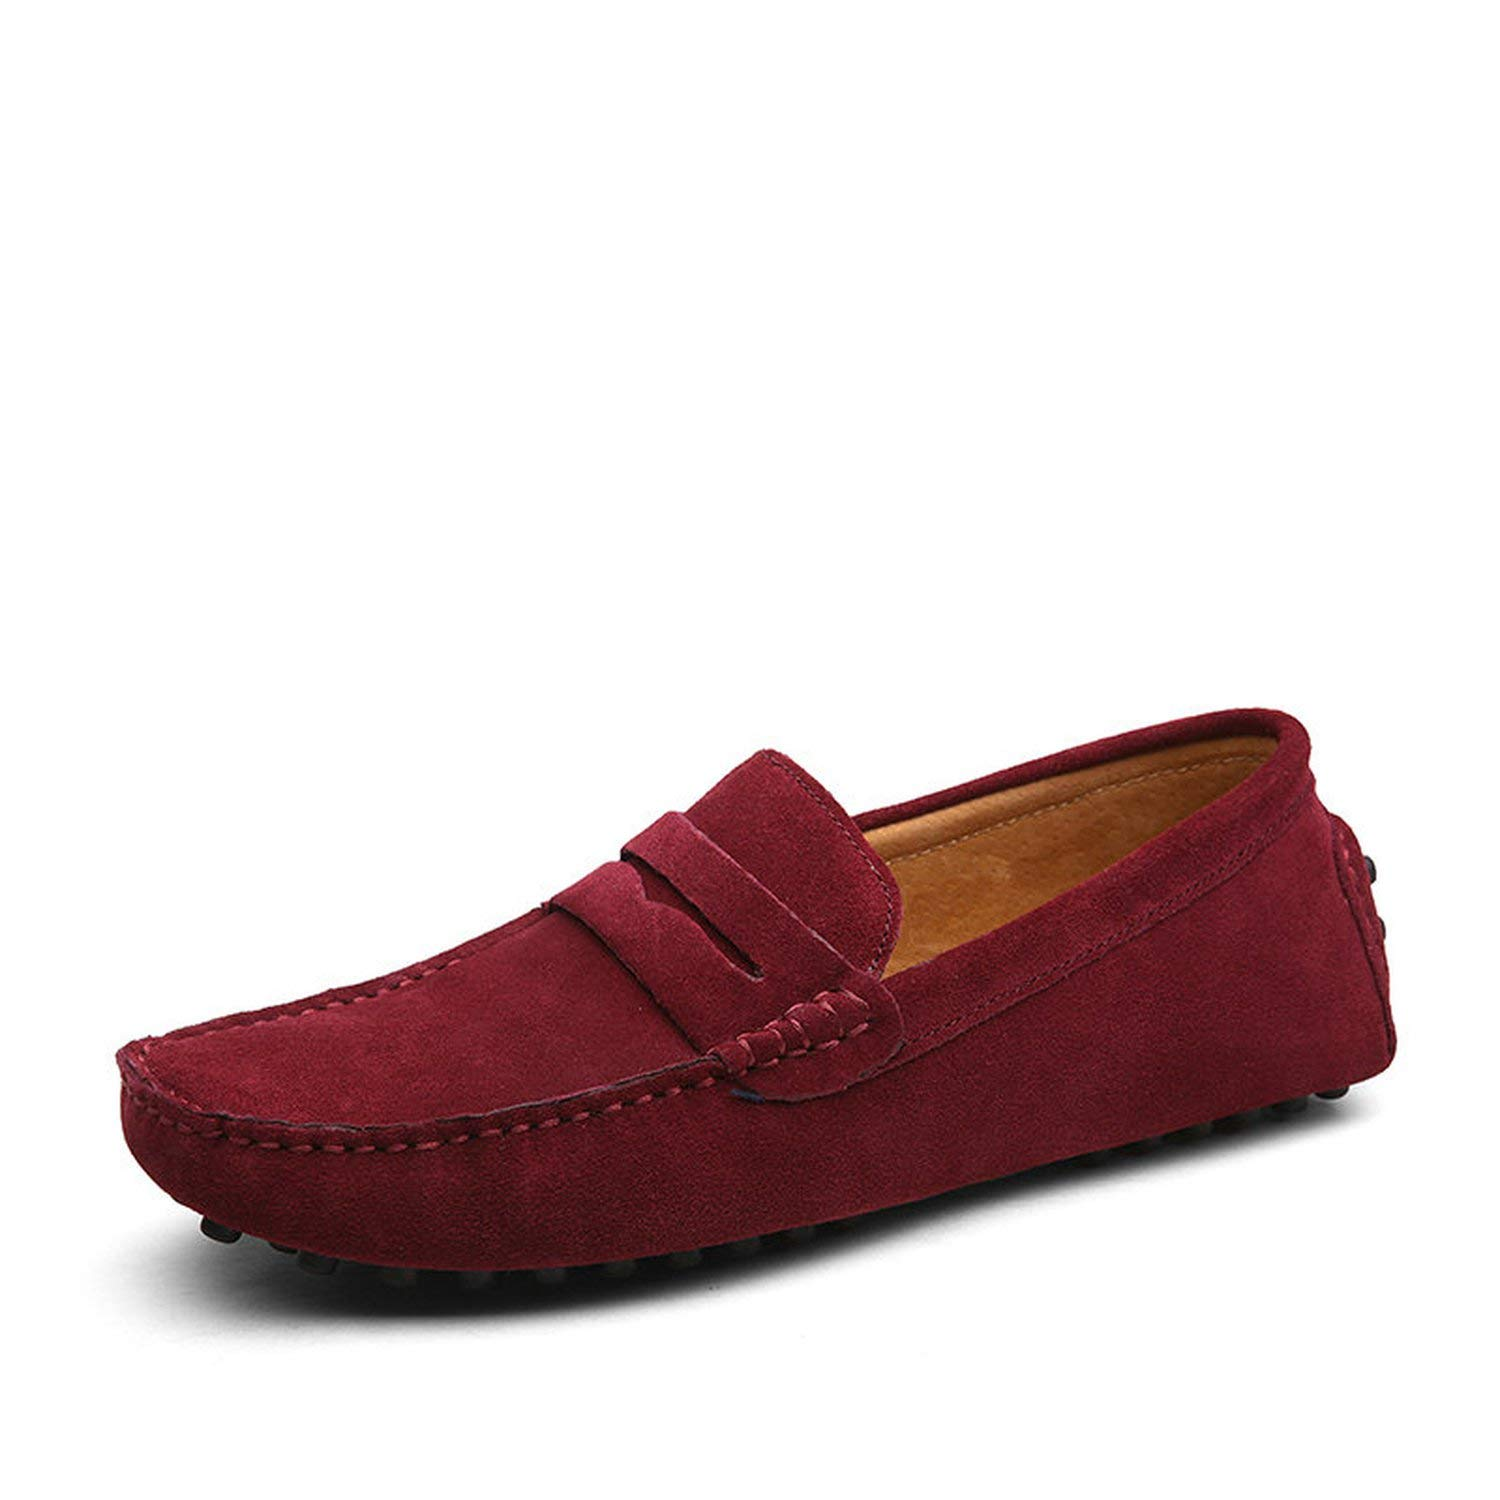 Jade clear Fashion Summer Style Soft Moccasins Men Loafers Genuine Leather Shoes Men Flats Gommino Driving Shoes,01 Orange,6.5